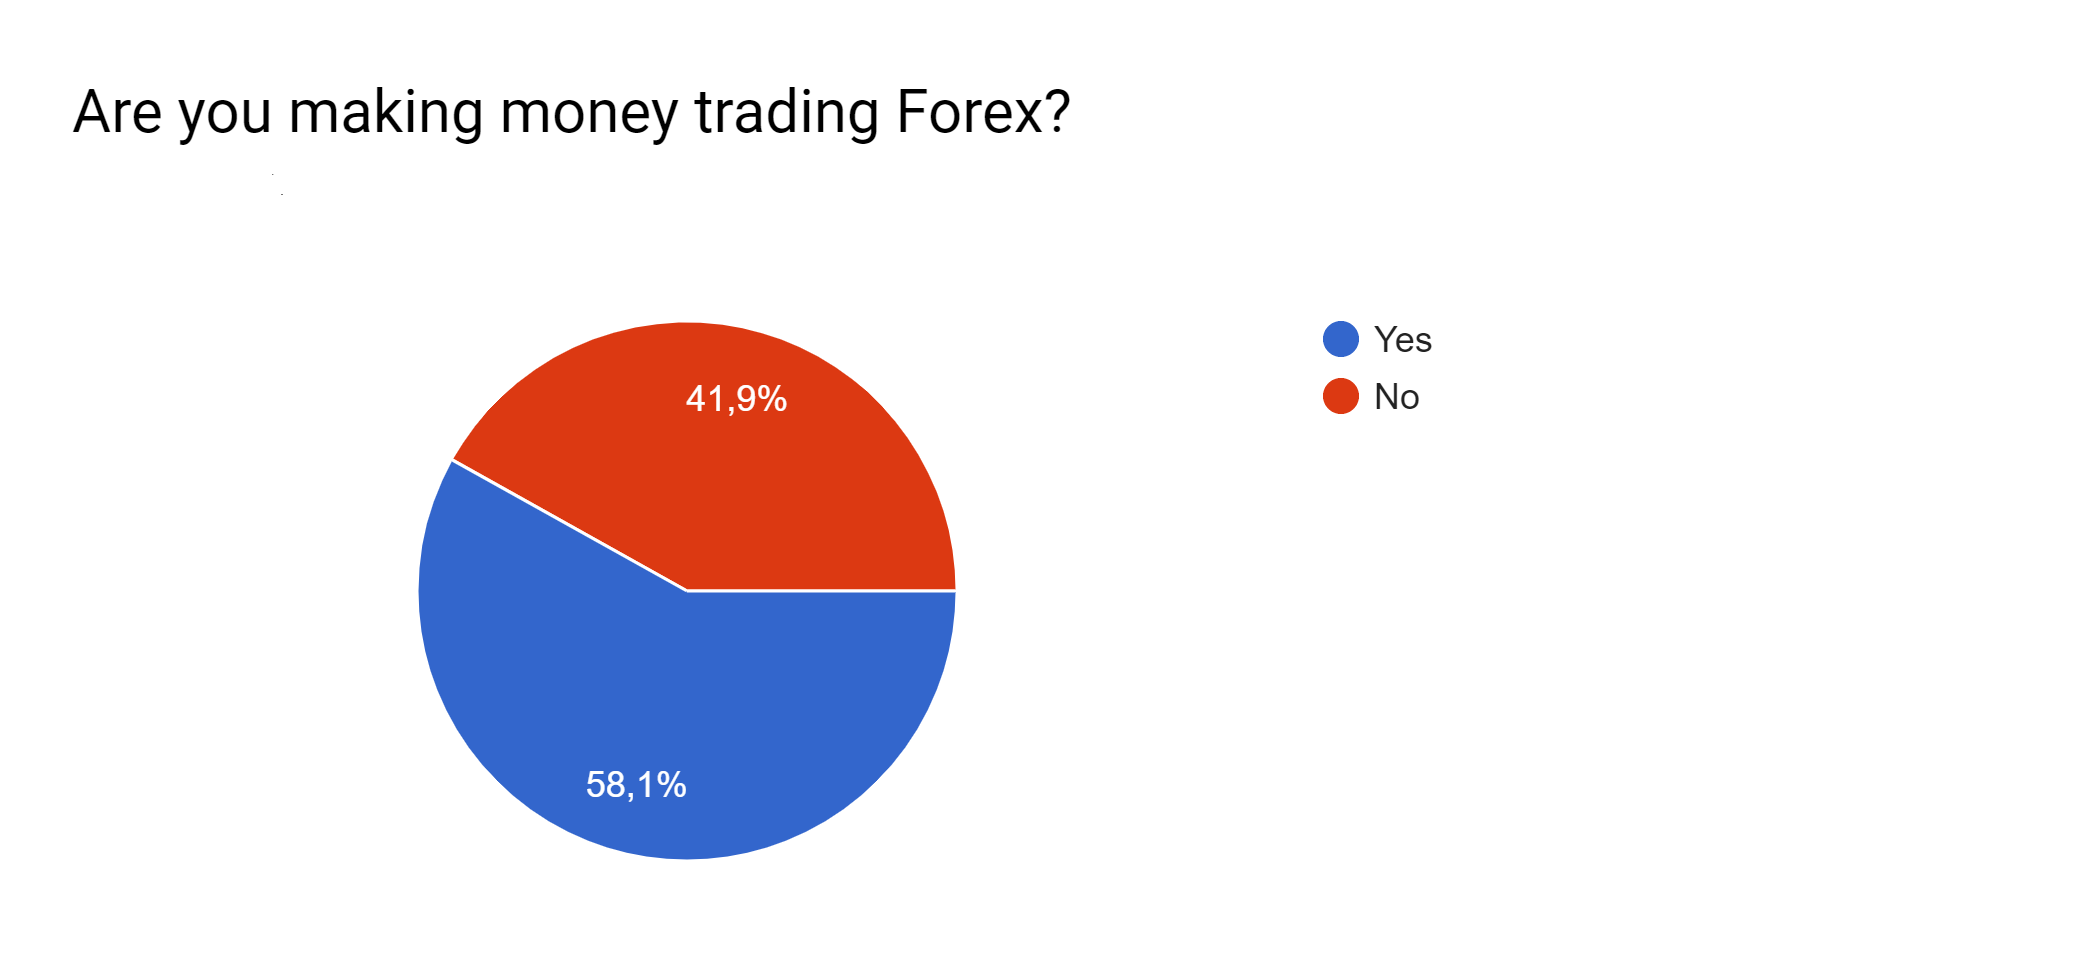 Are you making money trading Forex?